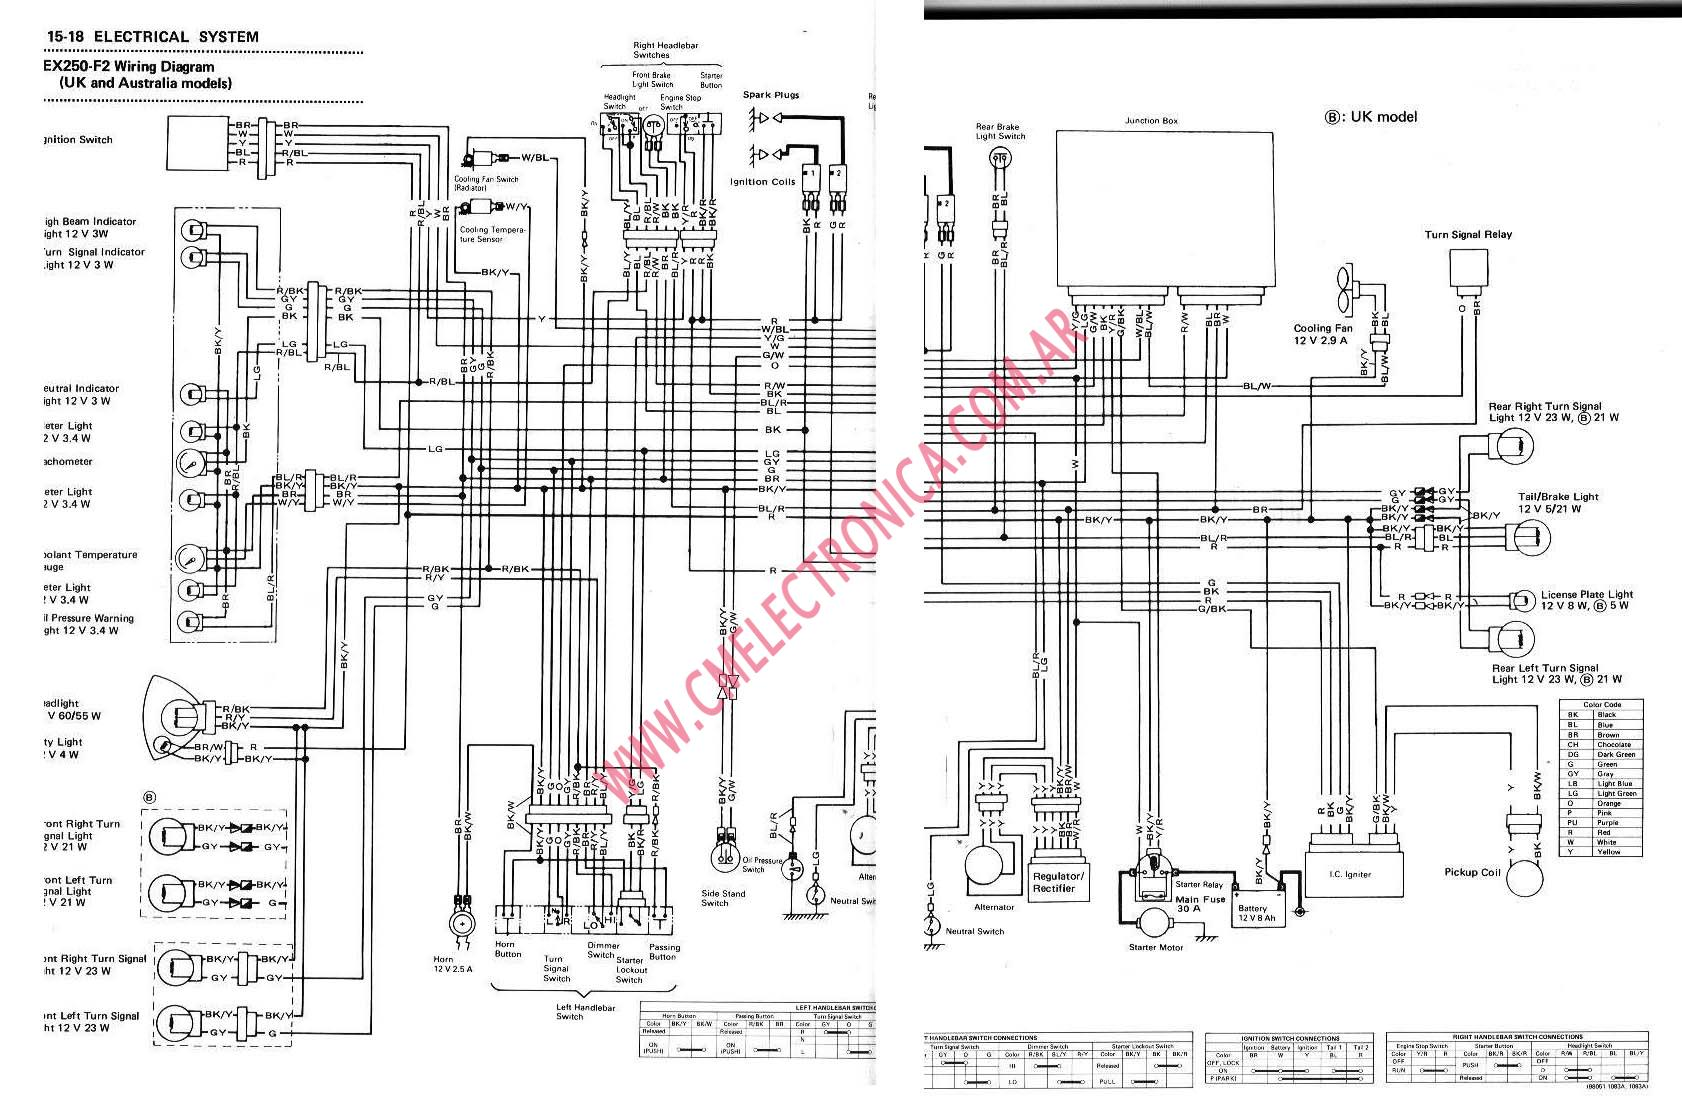 hight resolution of 2005 kawasaki bayou 250 wiring diagram simple wiring diagrams rh 22 studio011 de kawasaki mojave 250 wire diagram kawasaki mojave 250 wire diagram